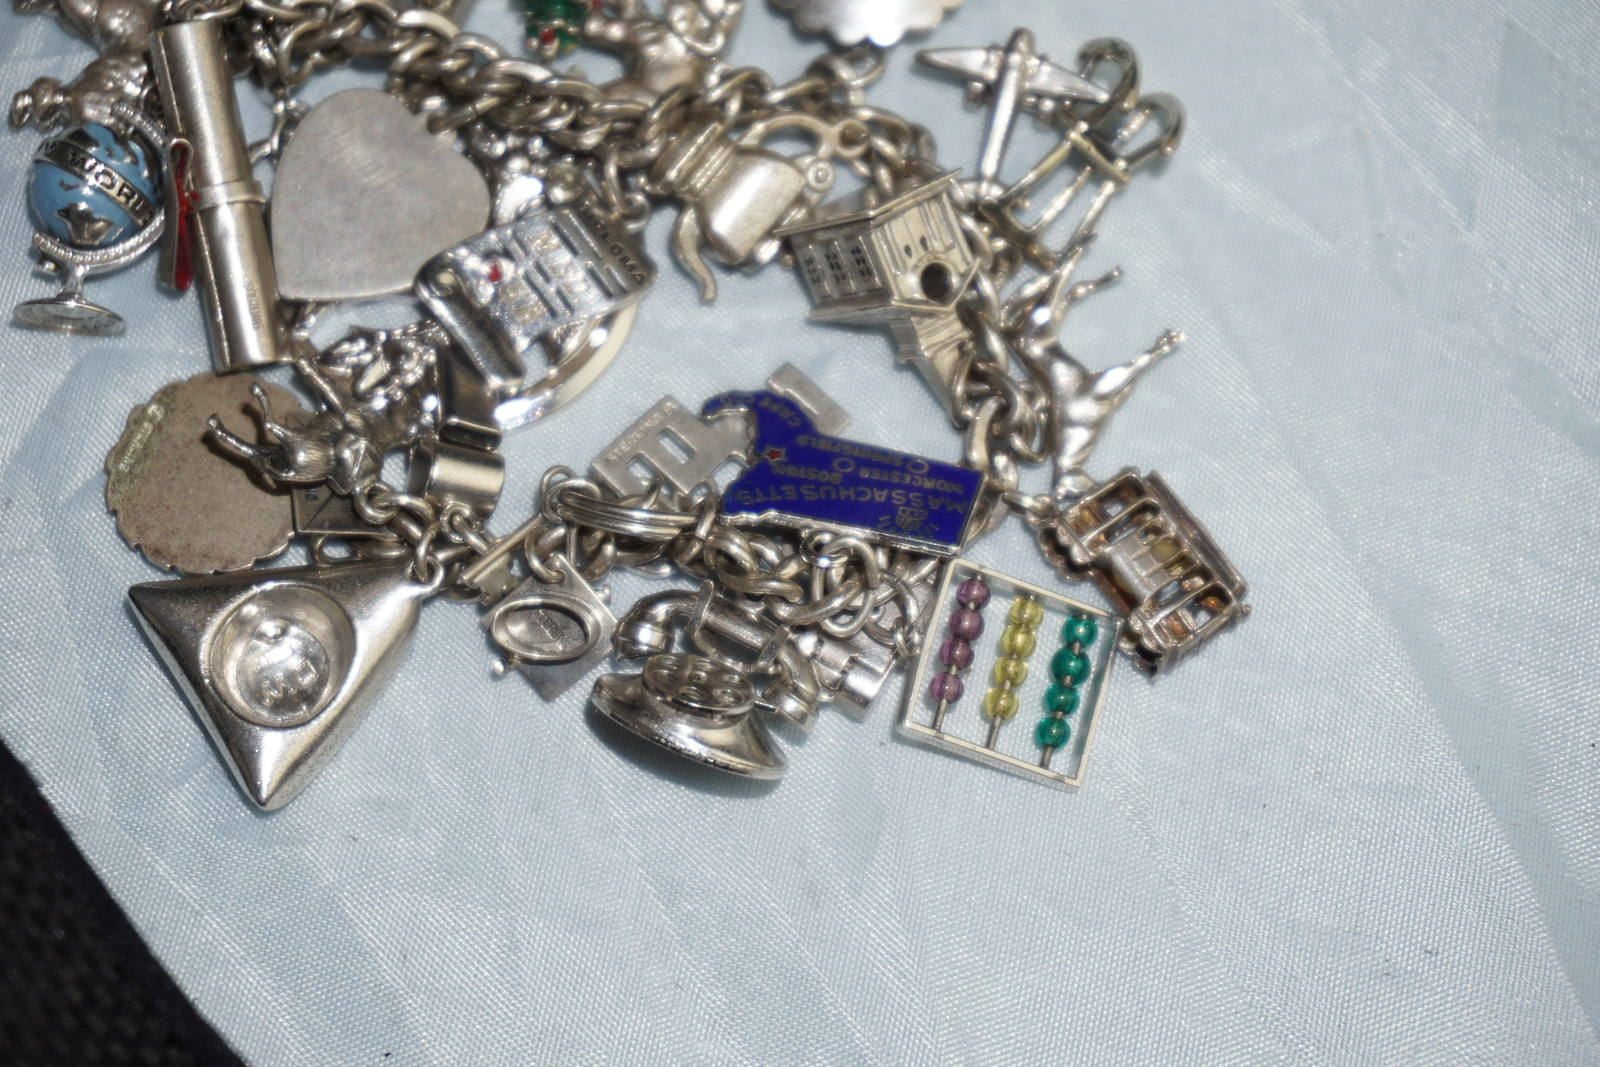 479ed26e03a Sterling Charm Bracelet 28 Charms Film Reel, Tree of Life, Paul Revere  Style Hat